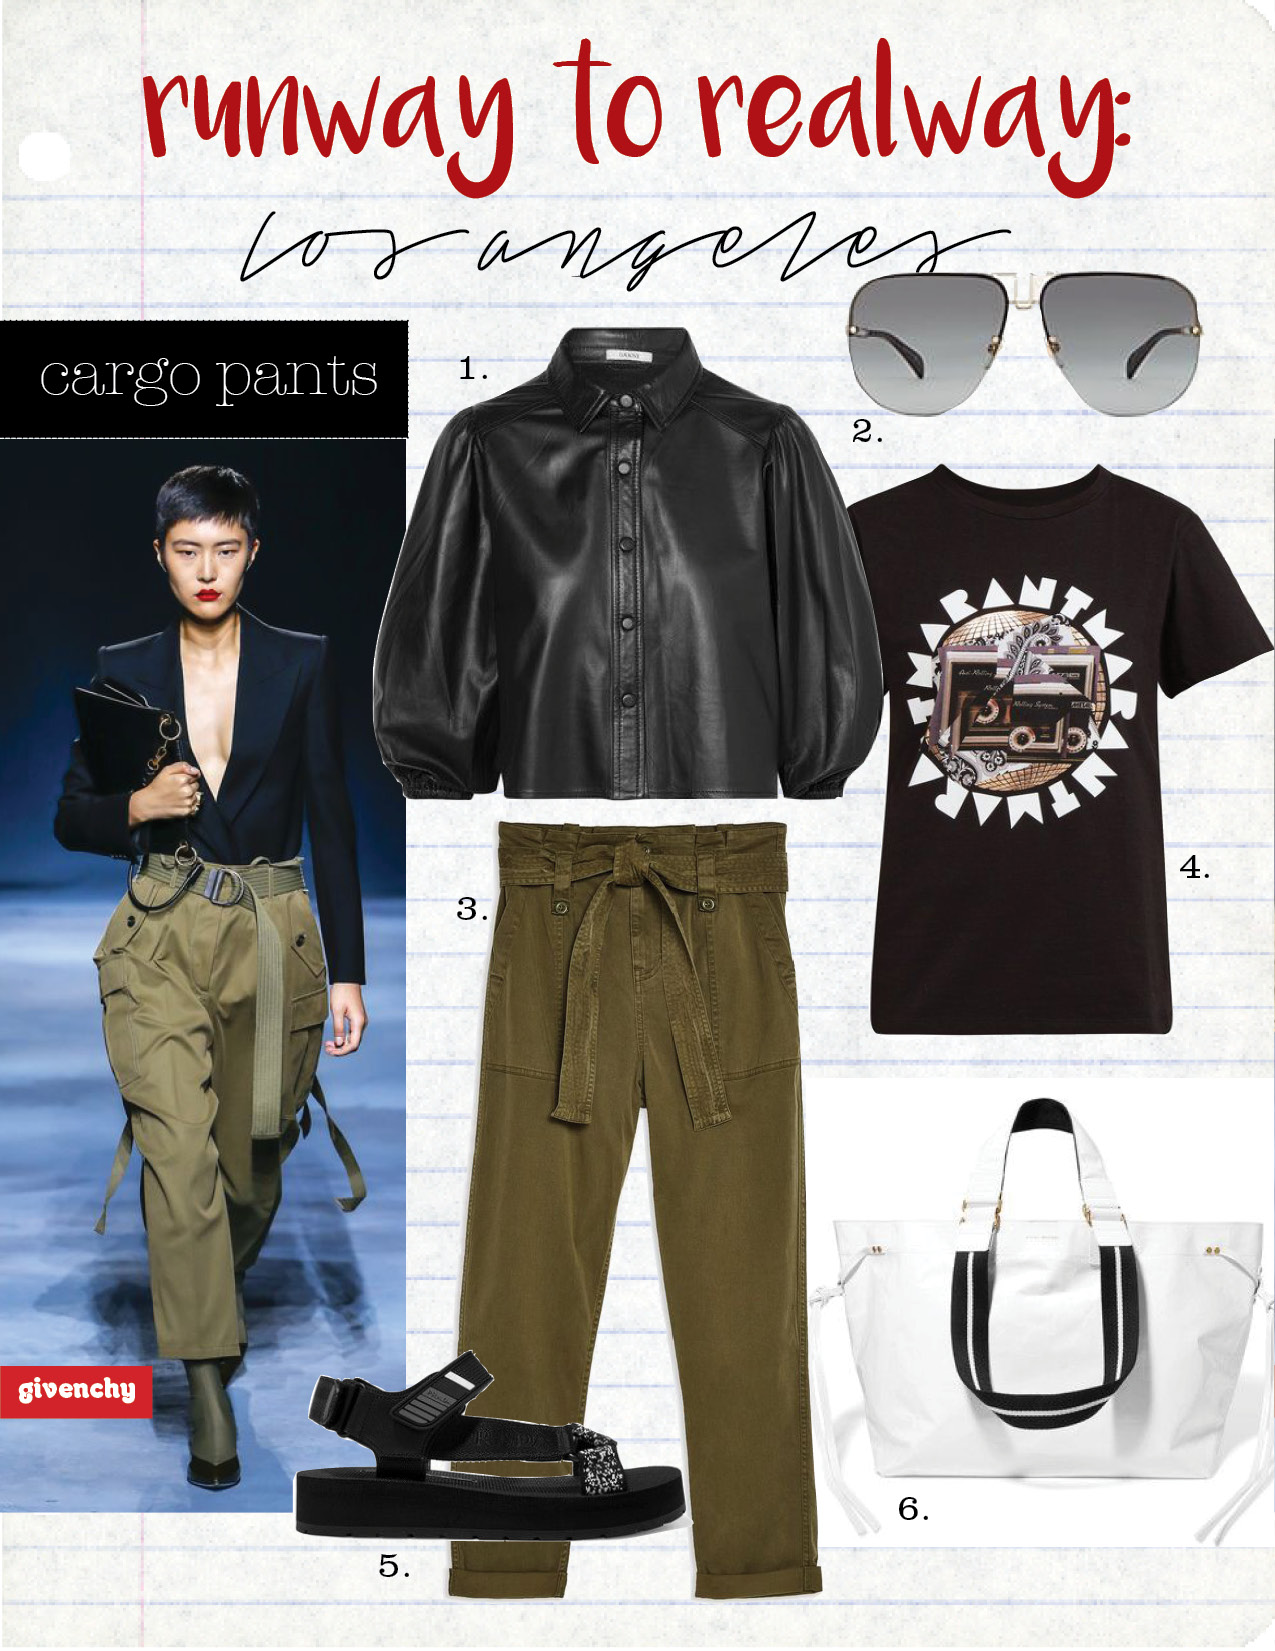 1. ganni leather shirt, $475,  saksfifthavenue.com  2. givenchy sunglasses, $410,  barneys.com  3. topshop cargo trousers, $75,  topshop.com  4. Isabel Marant zaof cotton-jersey t-shirt, $130,  matchesfashion.com  5. prada rubber-trimmed leather and canvas sandal, $590,  net-a-porter.com  6. Isabel Marant wardy tote, $870,  net-a-porter.com